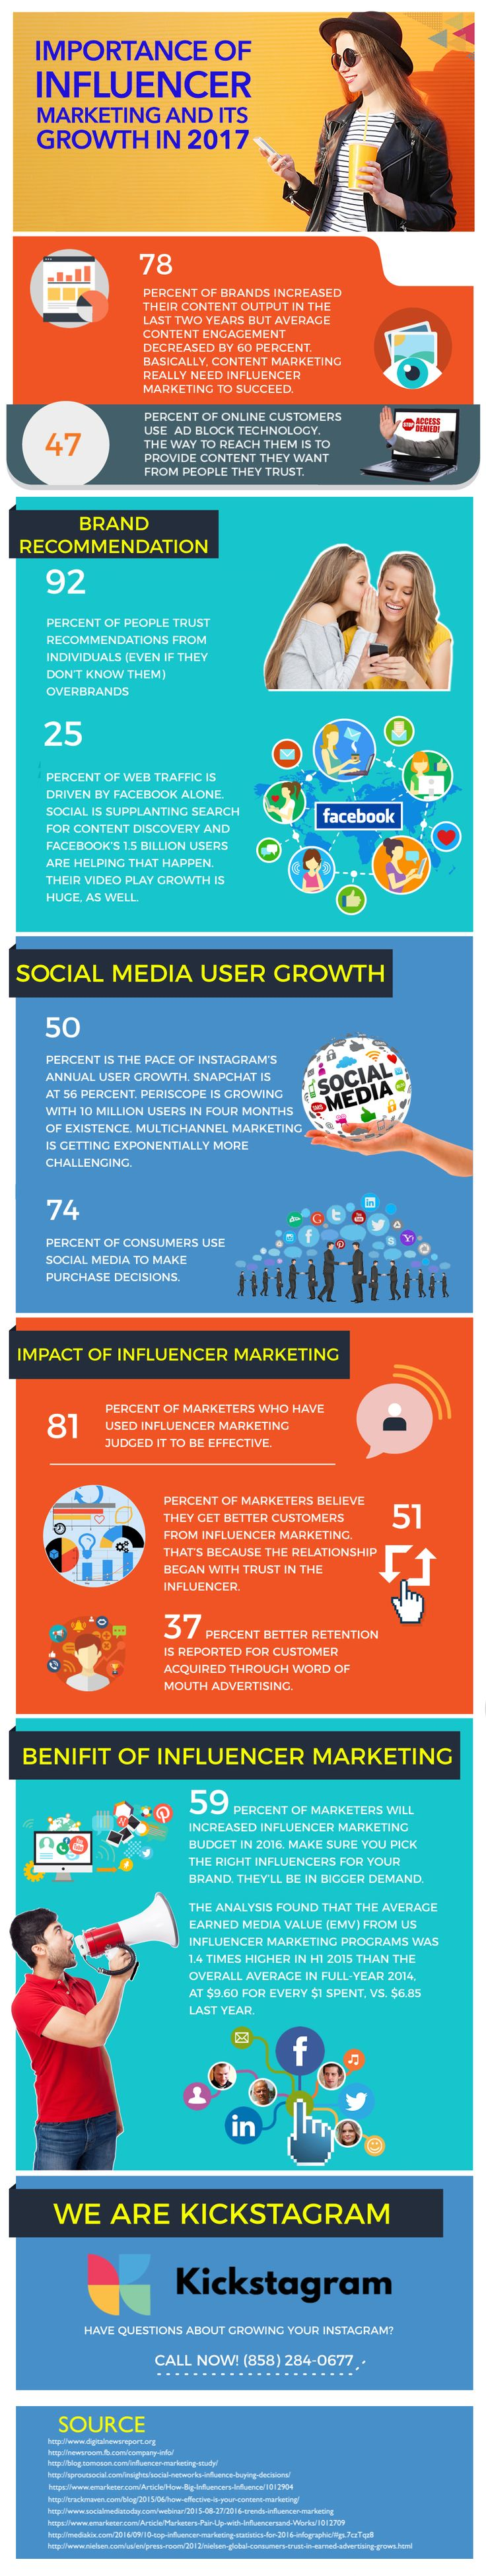 Importance Of Influencer Marketing And Its Growth In 2017 #Infographic #Marketing